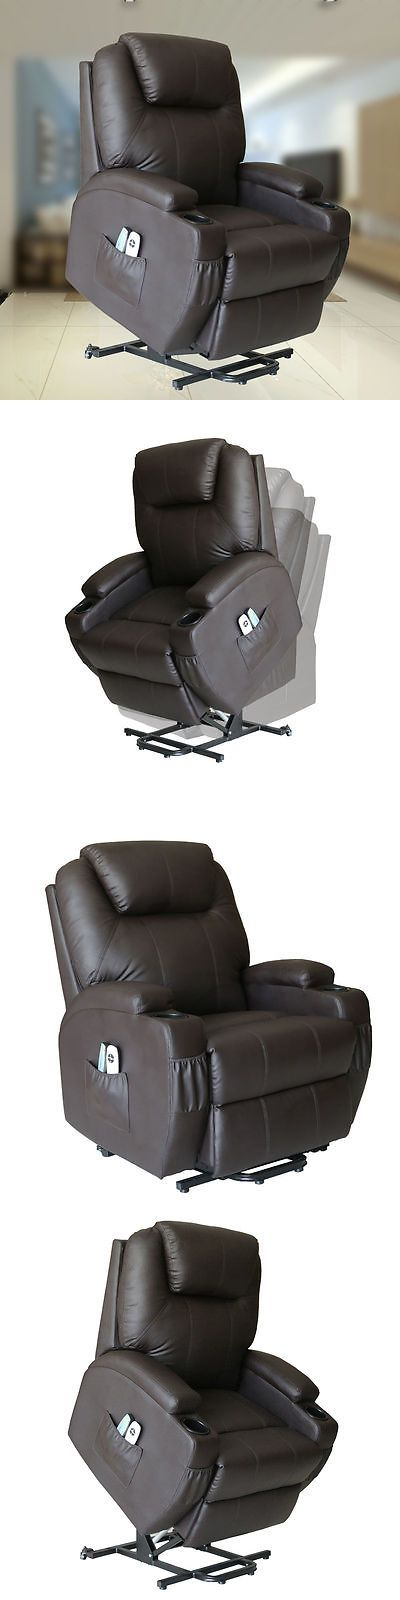 Electric Massage Chairs: Shiatsu Massage Chair Electric Recliner Sofa Heat Power Lift Coffee 2 Control -> BUY IT NOW ONLY: $489.99 on eBay!